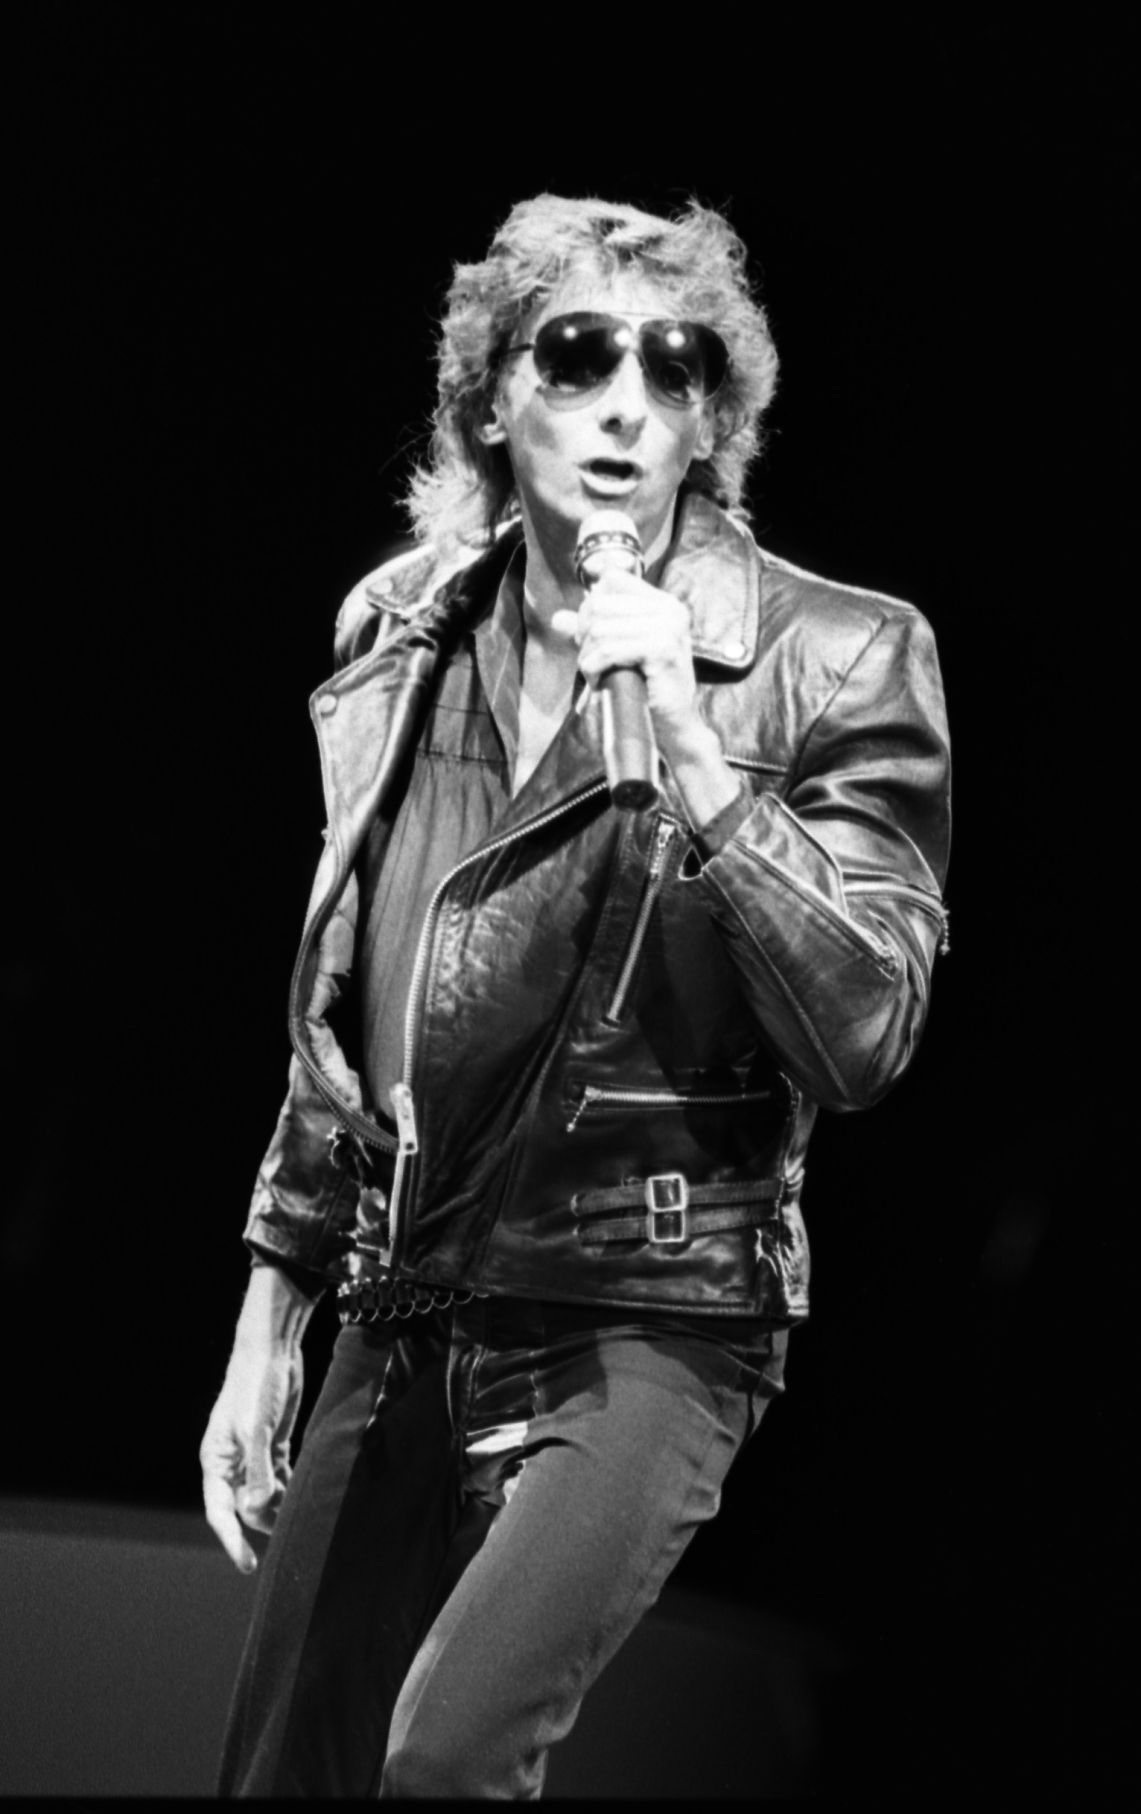 Barry Manilow in Tucson